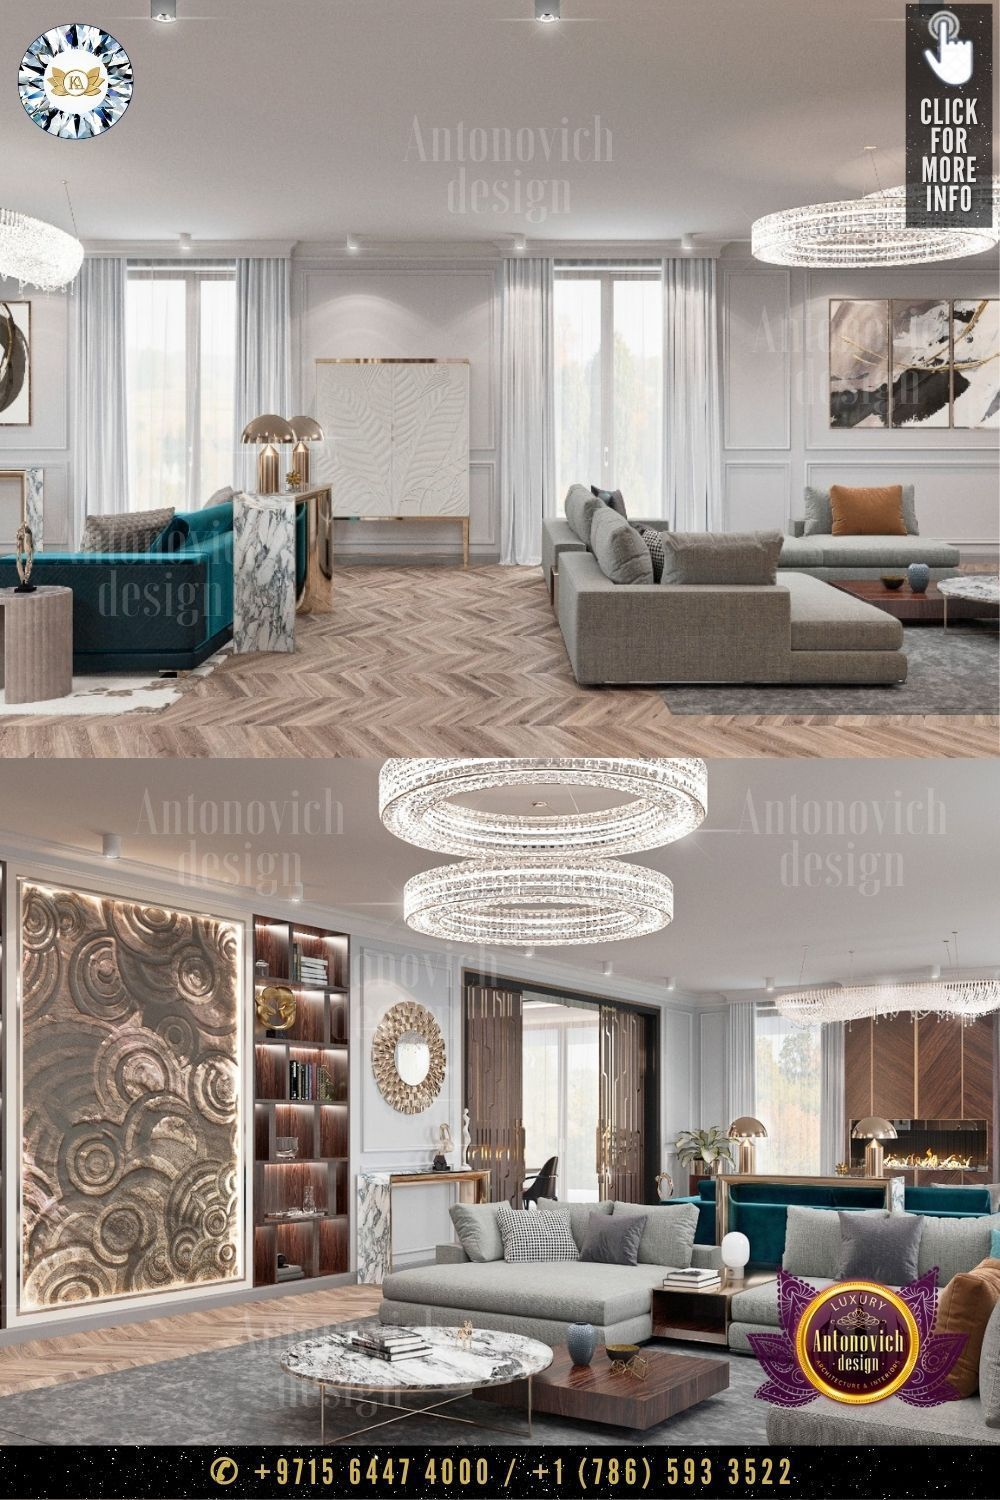 Latest Trend And Style For A Modern Apartment Modern Apartments Design Apartment Interior Design Interior Design Usa Elegant Interior Design